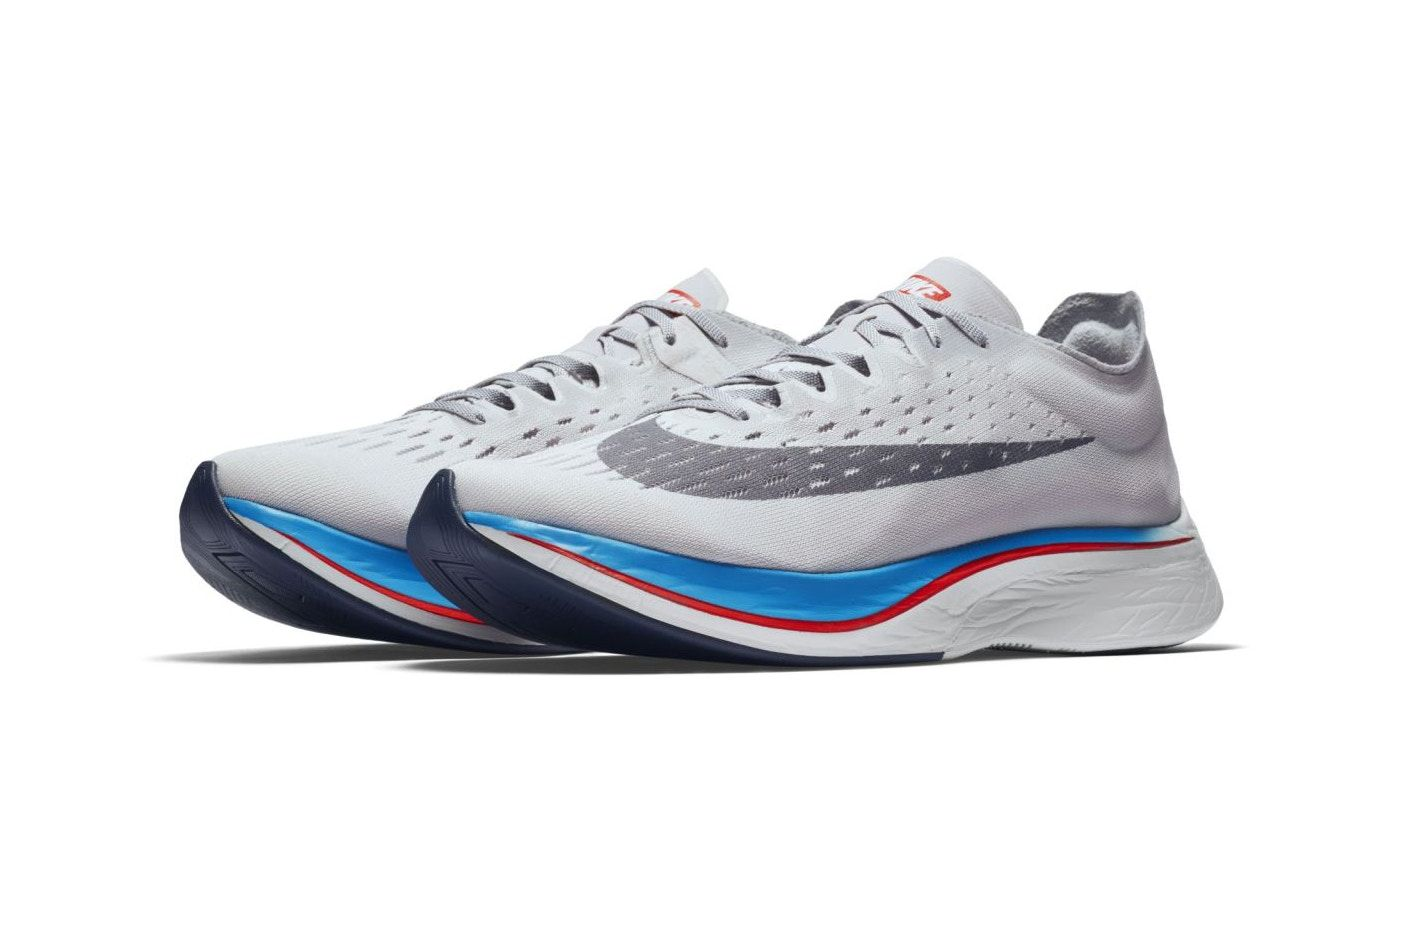 nike zoom vaporfly 4% materializza in grigio colorway nike.